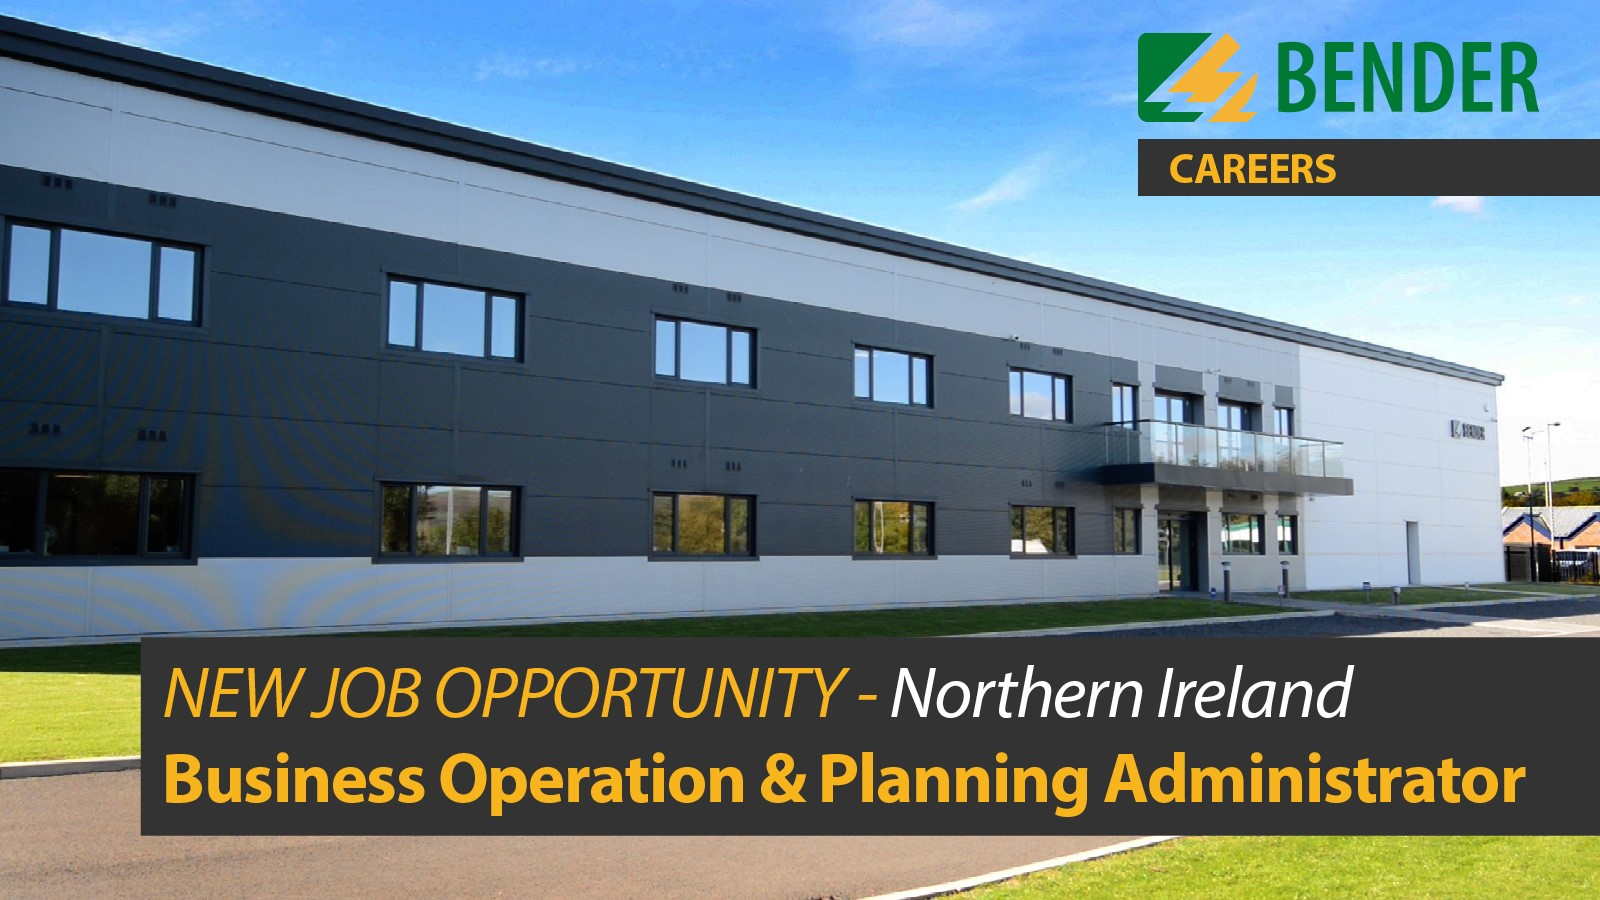 Business & Planning Administrator (Northern Ireland)